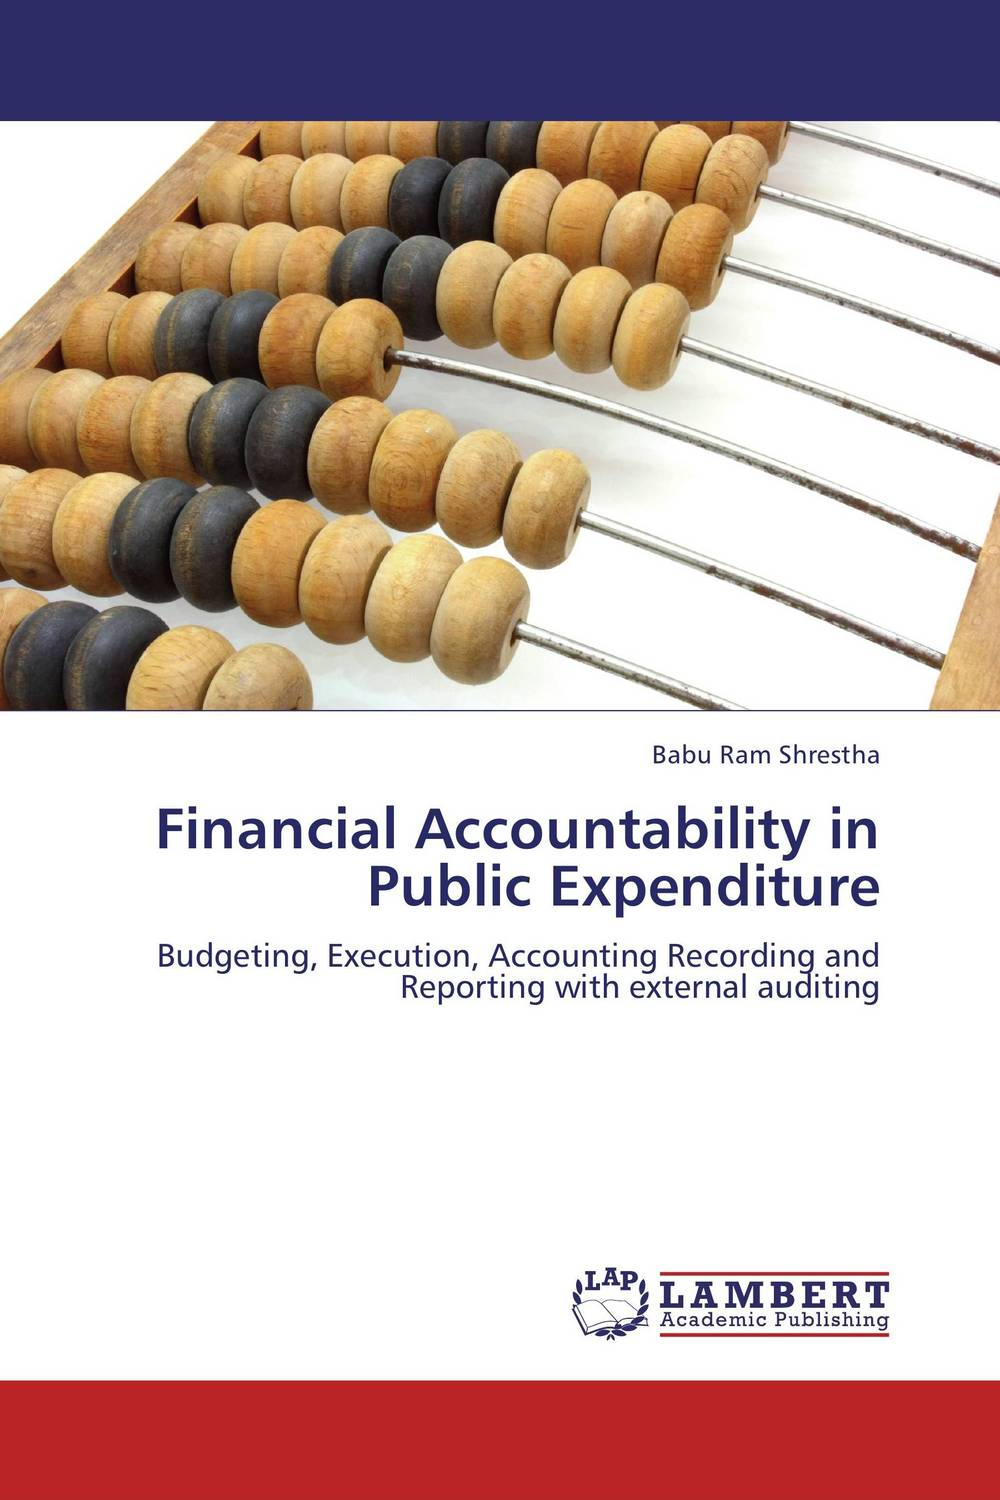 Financial Accountability in Public Expenditure risk management in public expenditure management and aid in malaysia